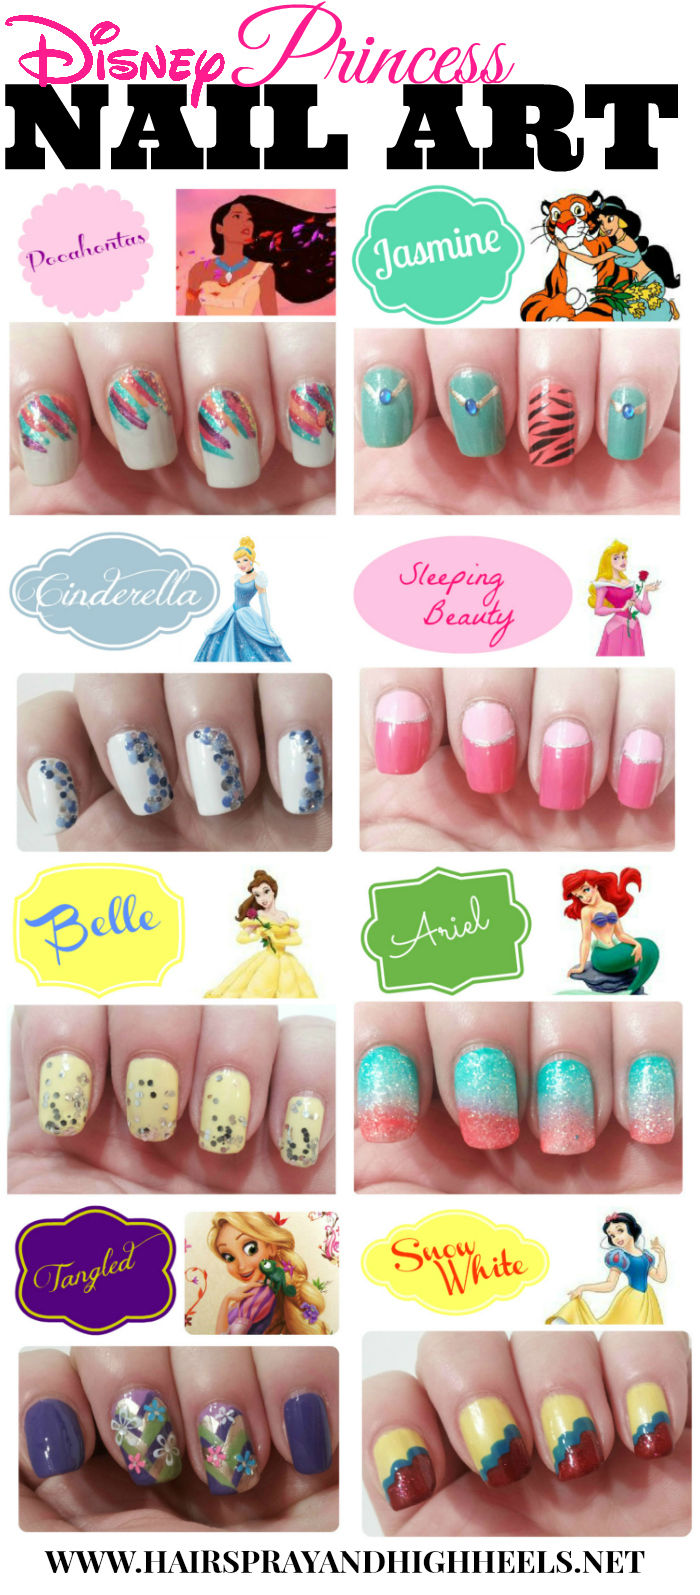 Disney Princess Nail Art Pictures, Photos, and Images for Facebook, Tumblr,  Pinterest, and Twitter - Disney Princess Nail Art Pictures, Photos, And Images For Facebook